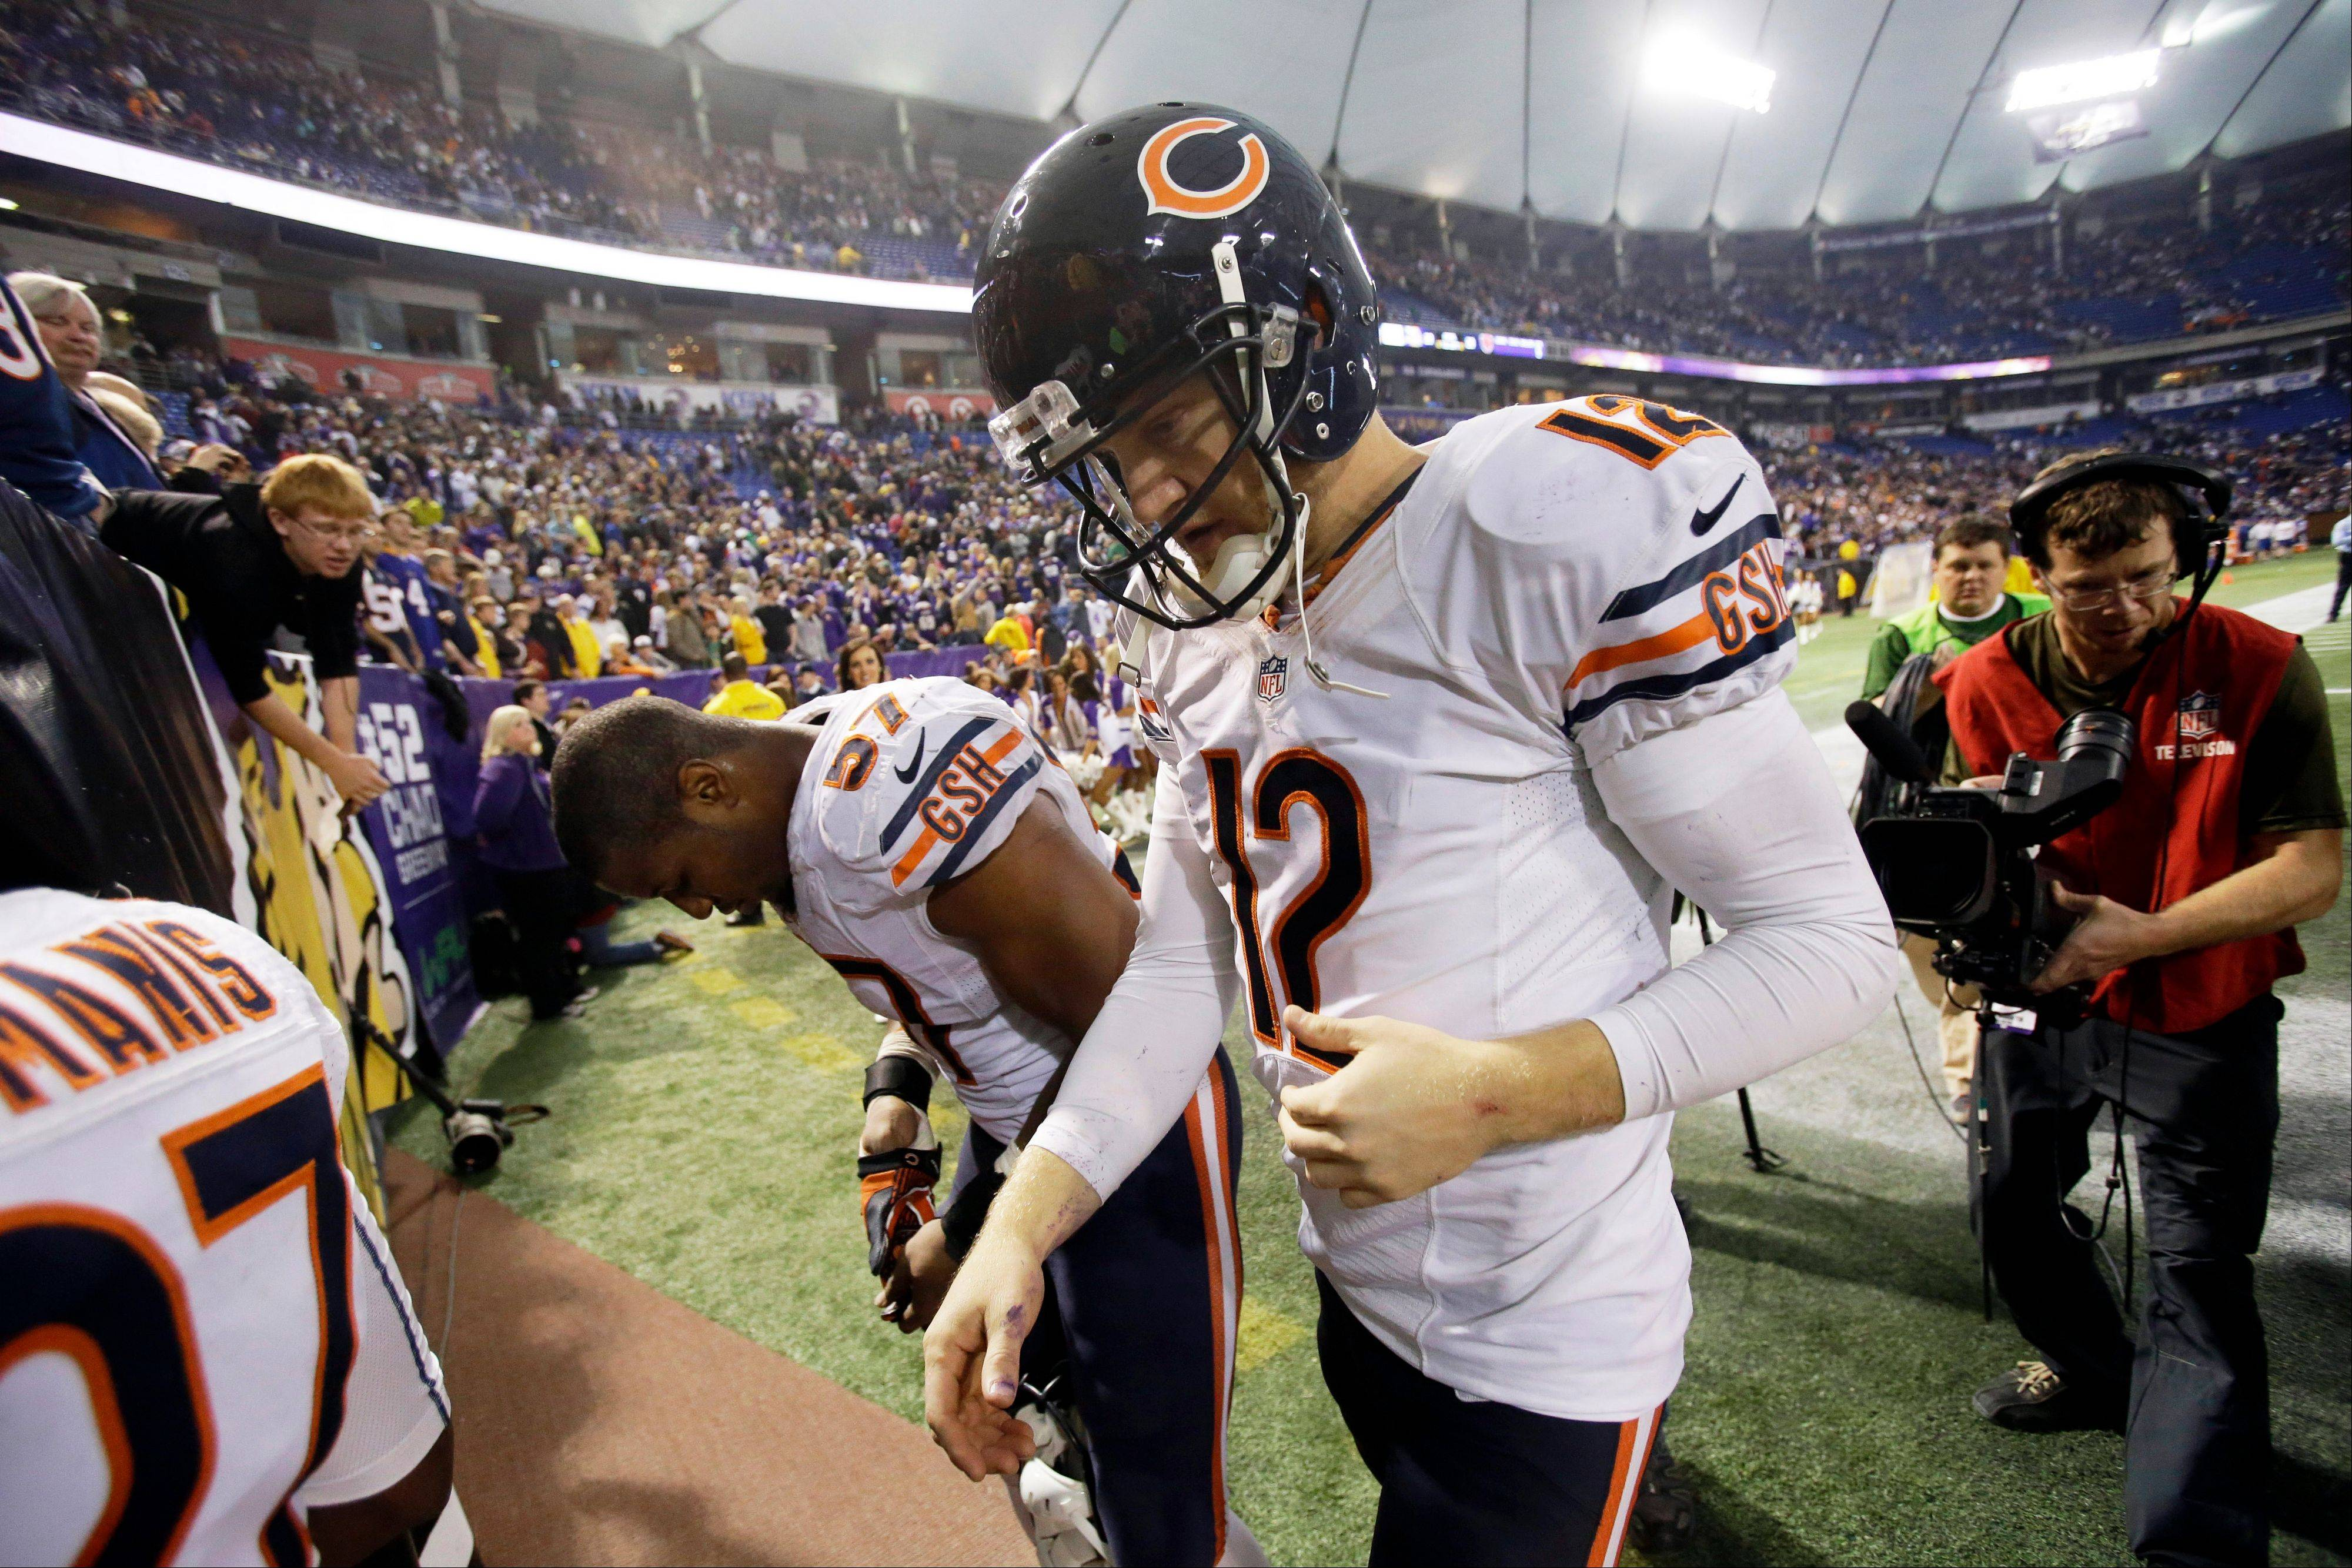 Bears quarterback Josh McCown walks off the field after Sunday's 23-20 overtime loss to the Vikings.